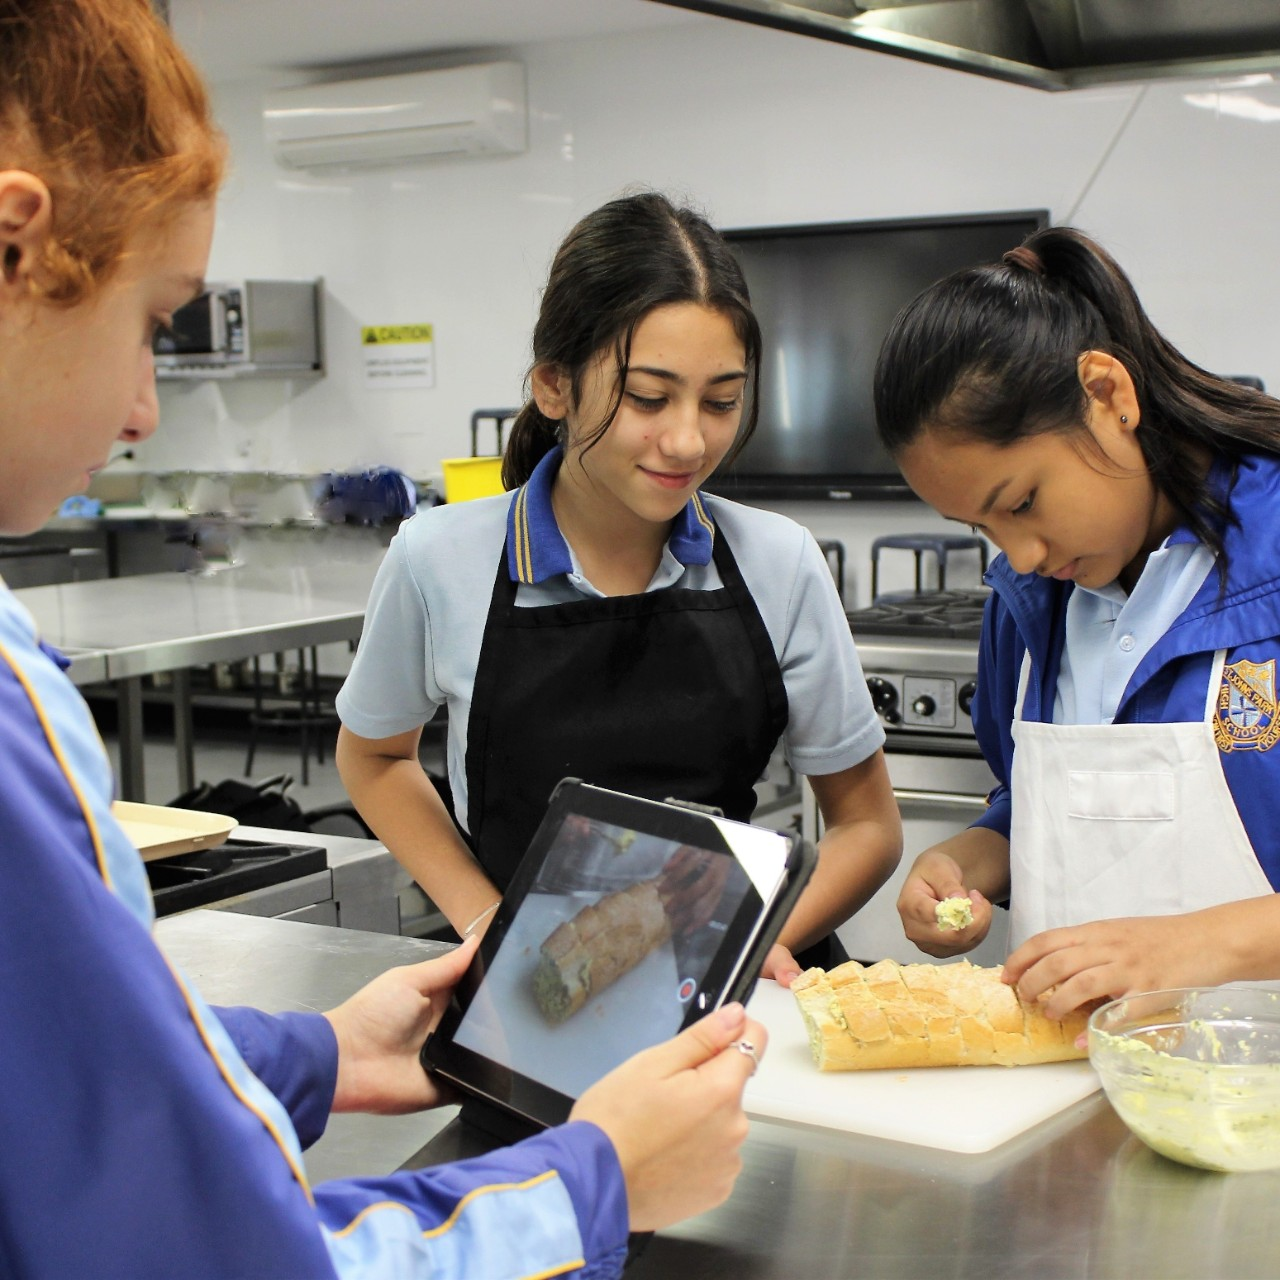 Students videoing cooking in commercial kitchen